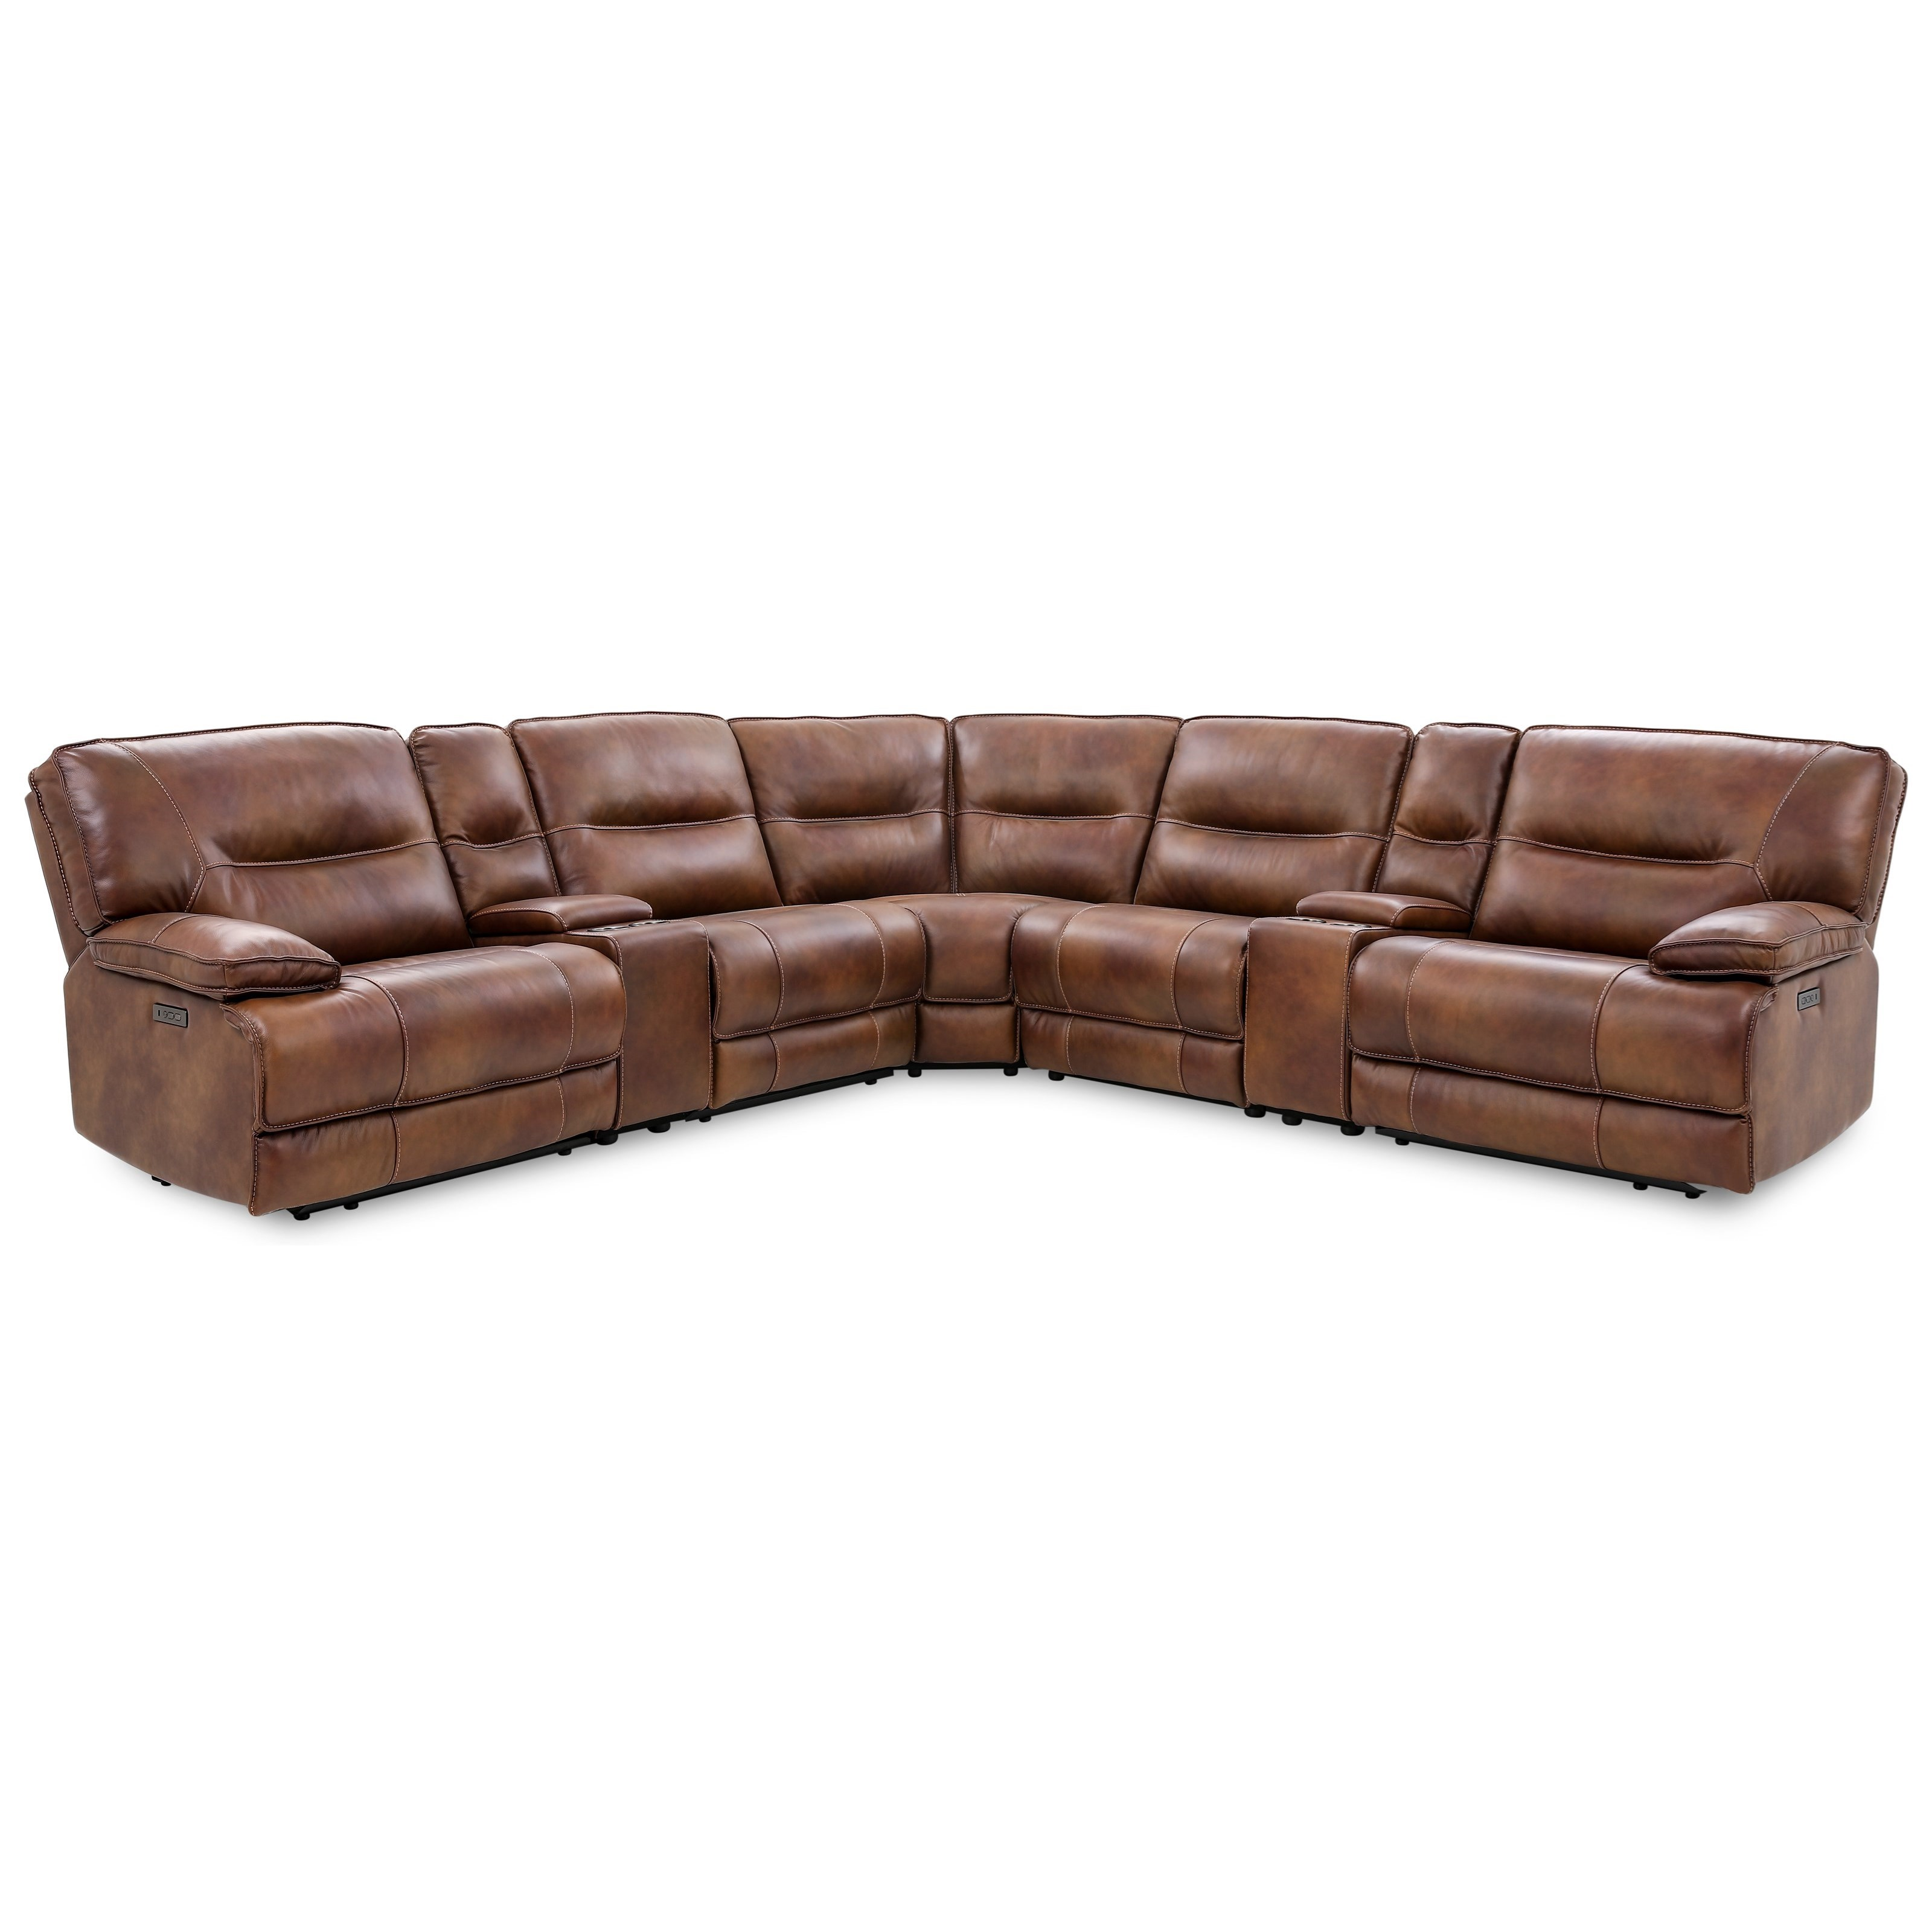 70048 6-Piece Power Reclining Sectional by Cheers at Household Furniture